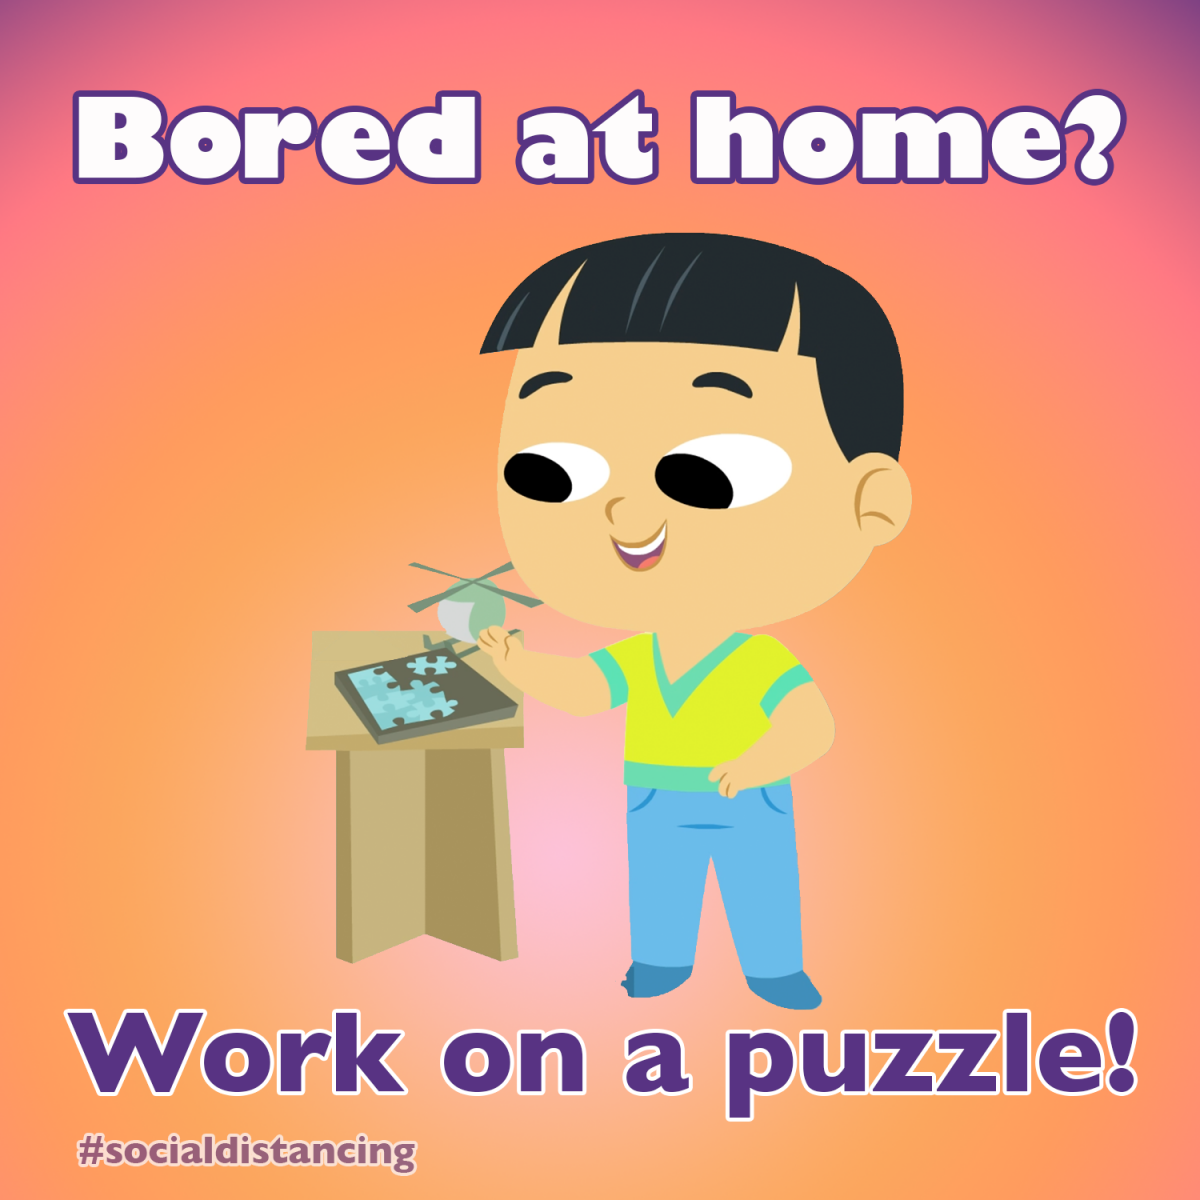 work on a puzzle